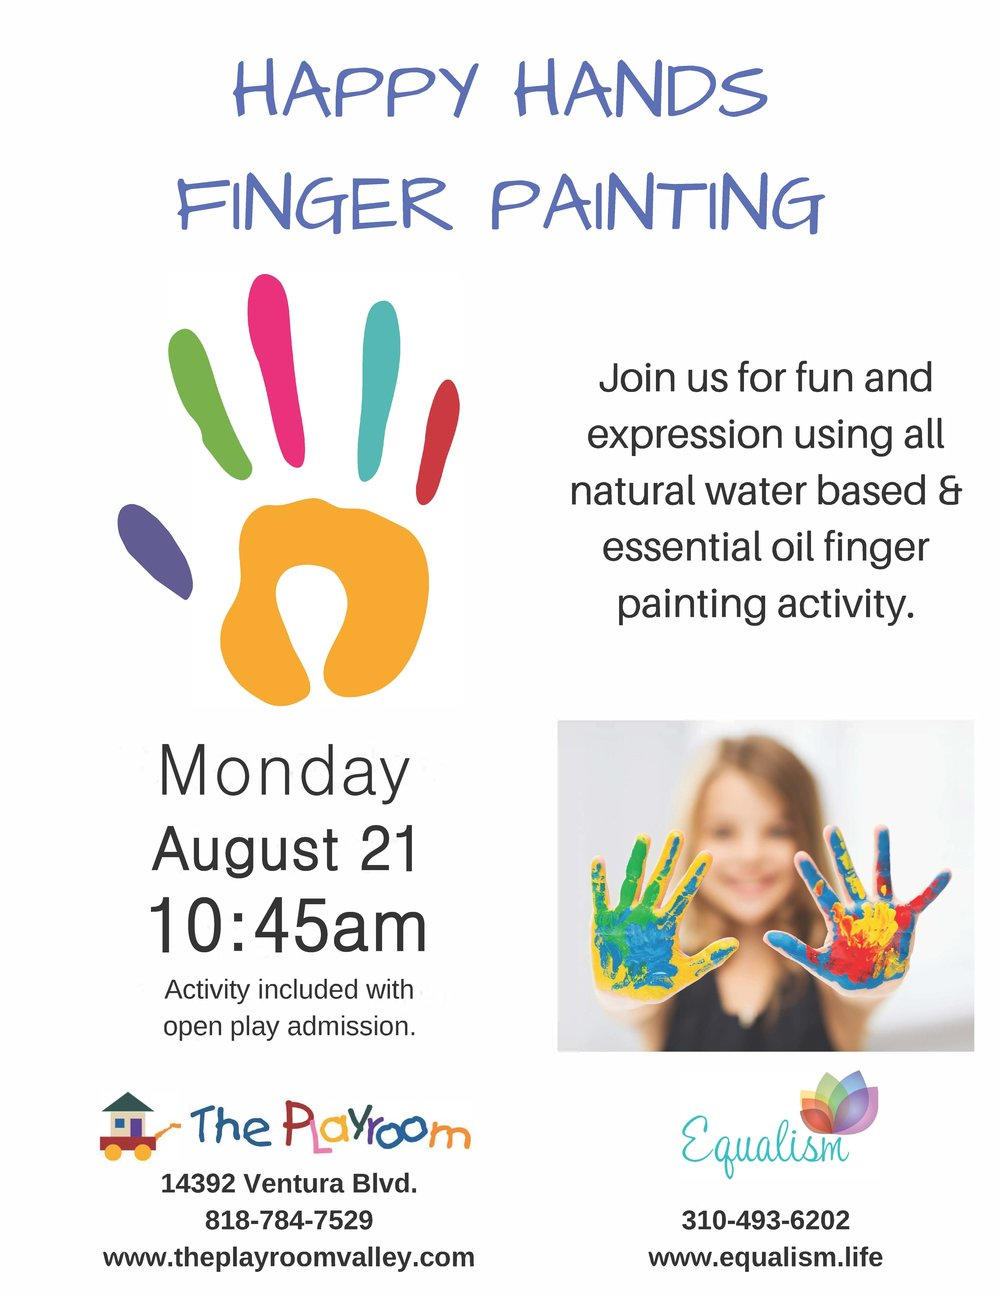 Happy HandsFinger Painting - The Playroom.jpg